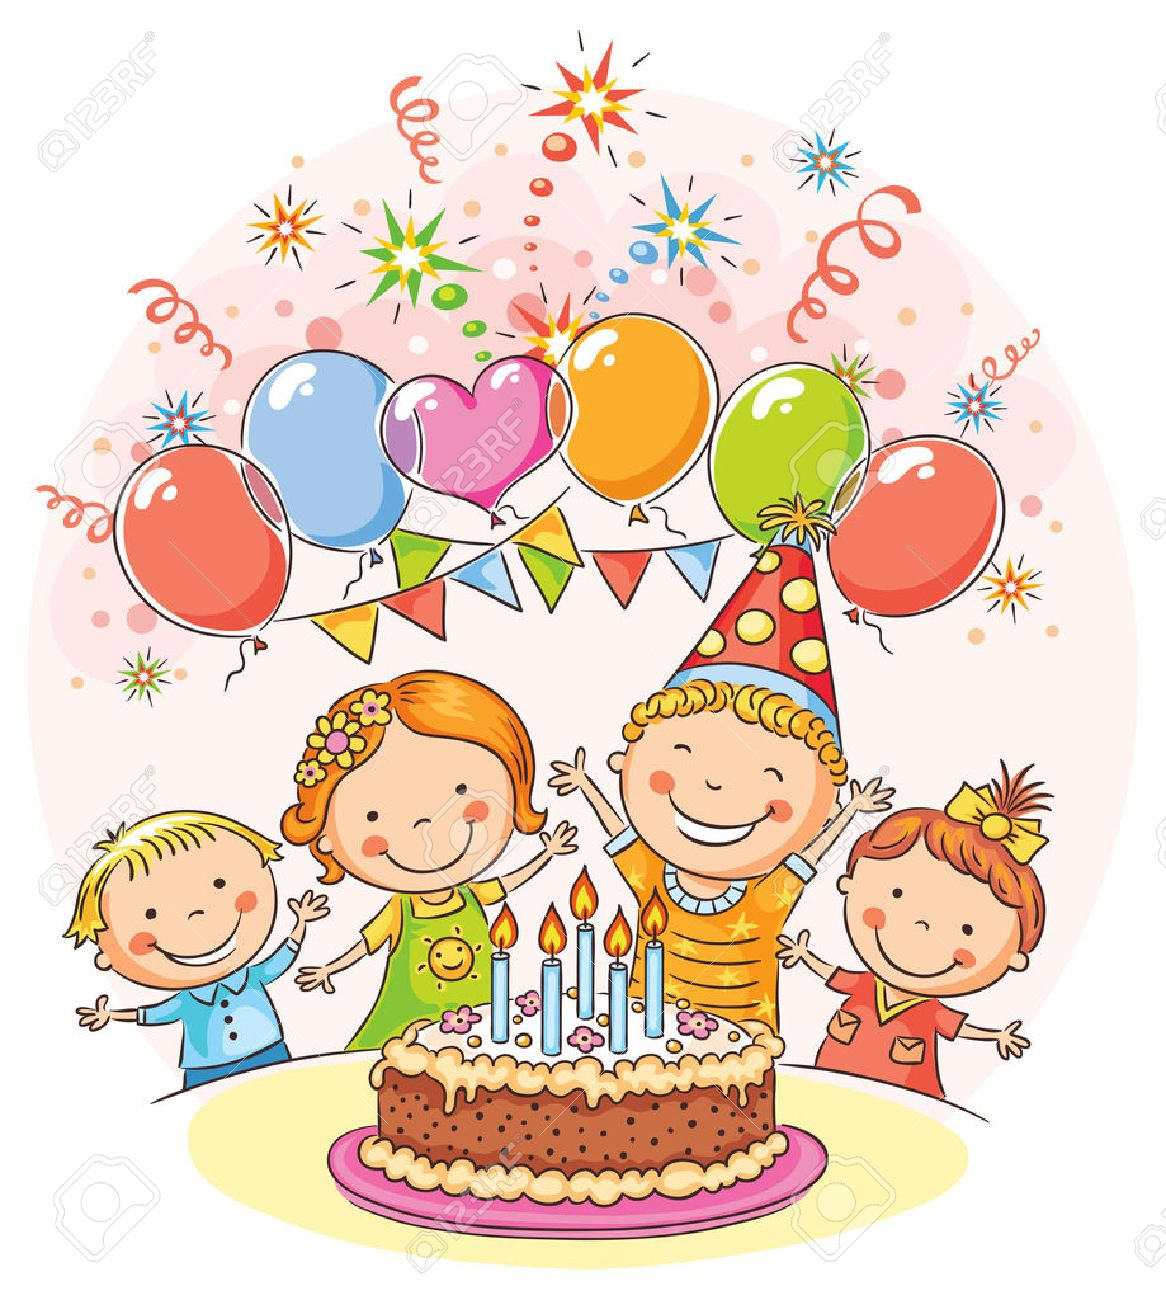 27,450 Kids Birthday Party Cliparts, Stock Vector And Royalty Free ...